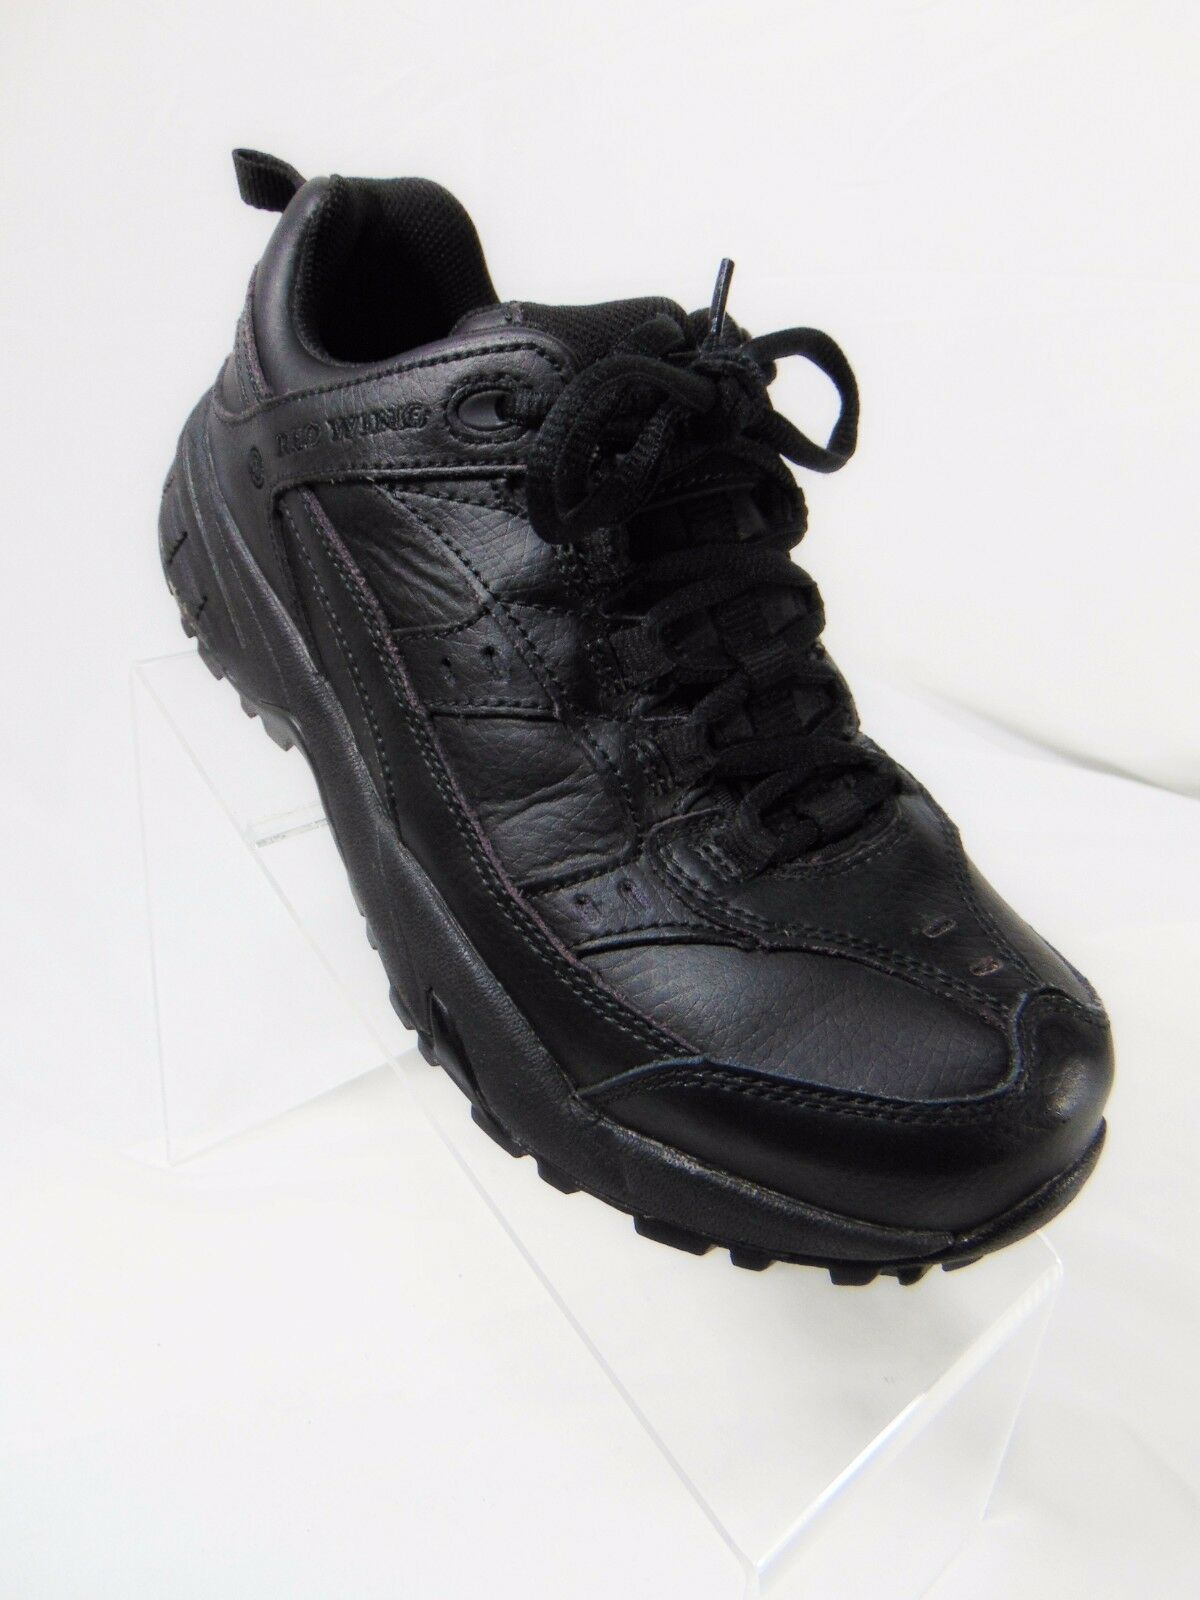 RED WING Women's Athletic Style Oxford Work Shoes Sz 7 D Wide Black safety